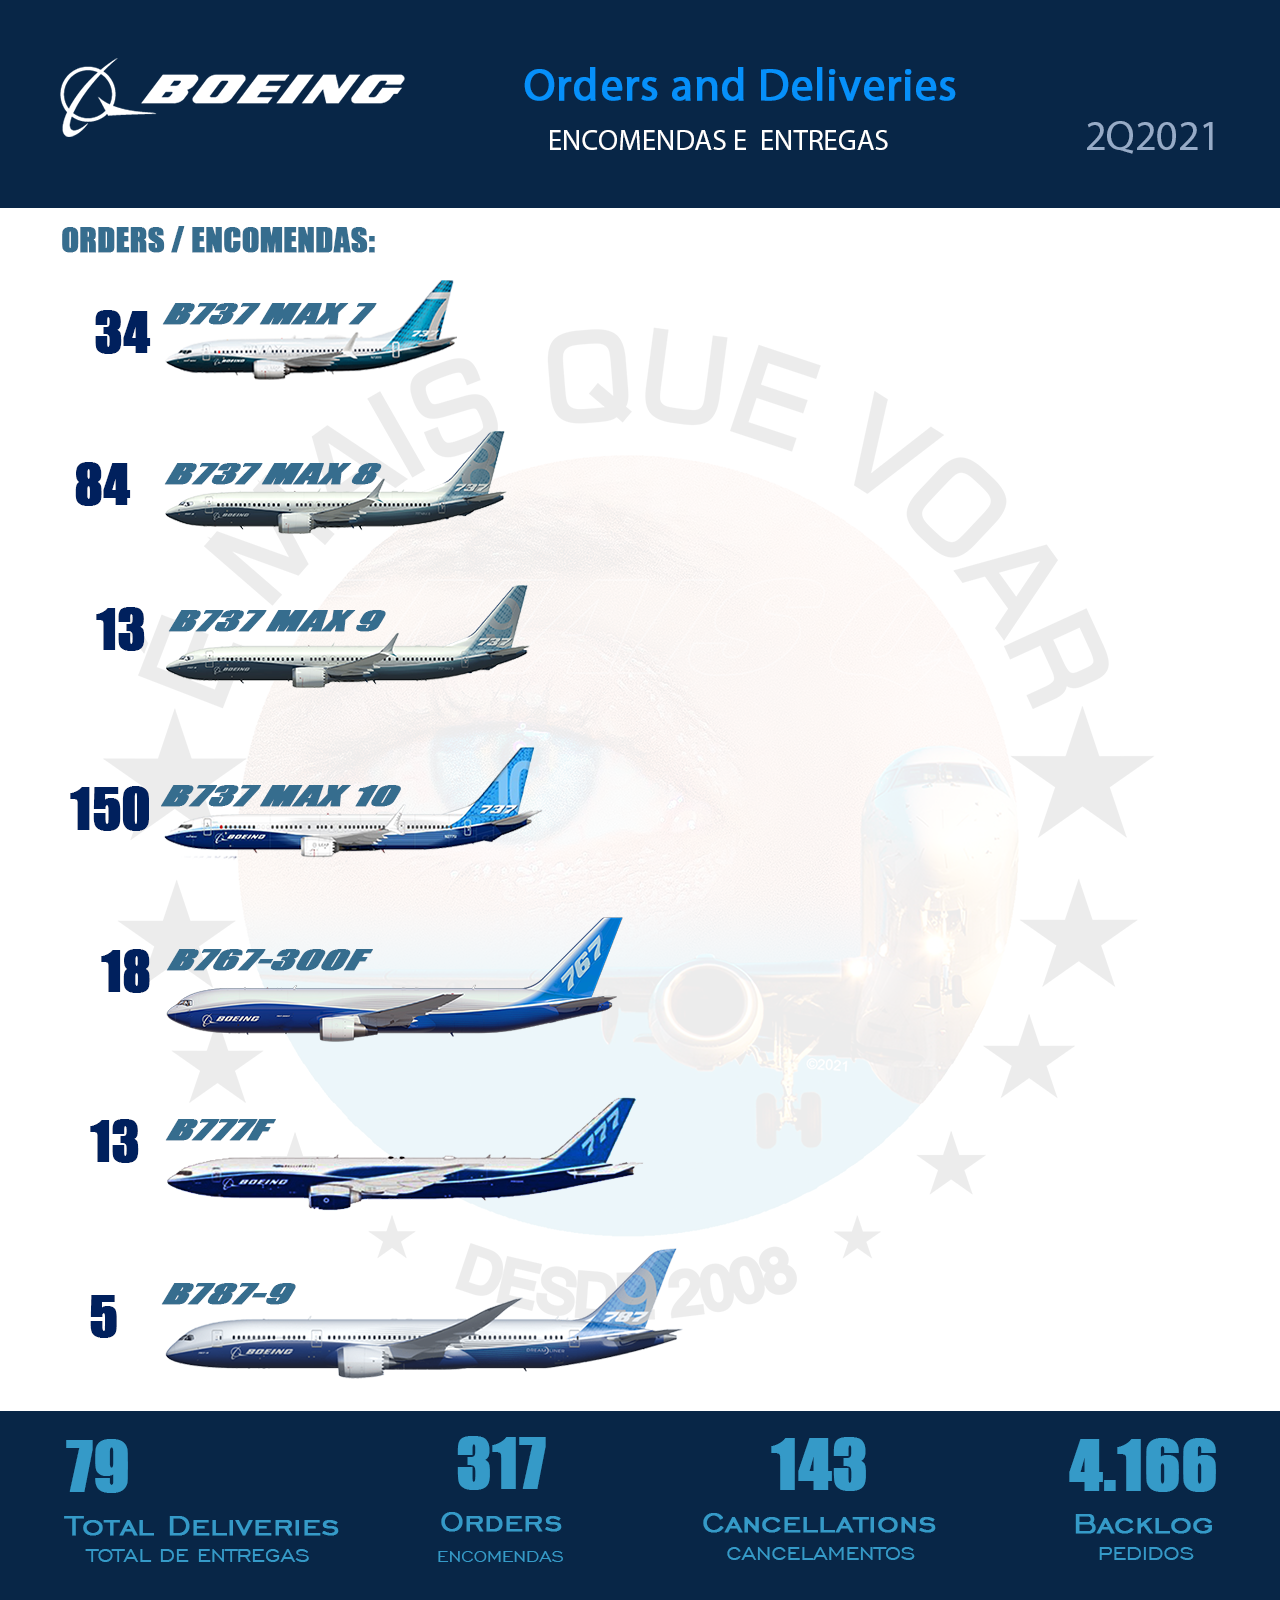 Boeing -  orders in the second quarter of 2021 (2Q21)